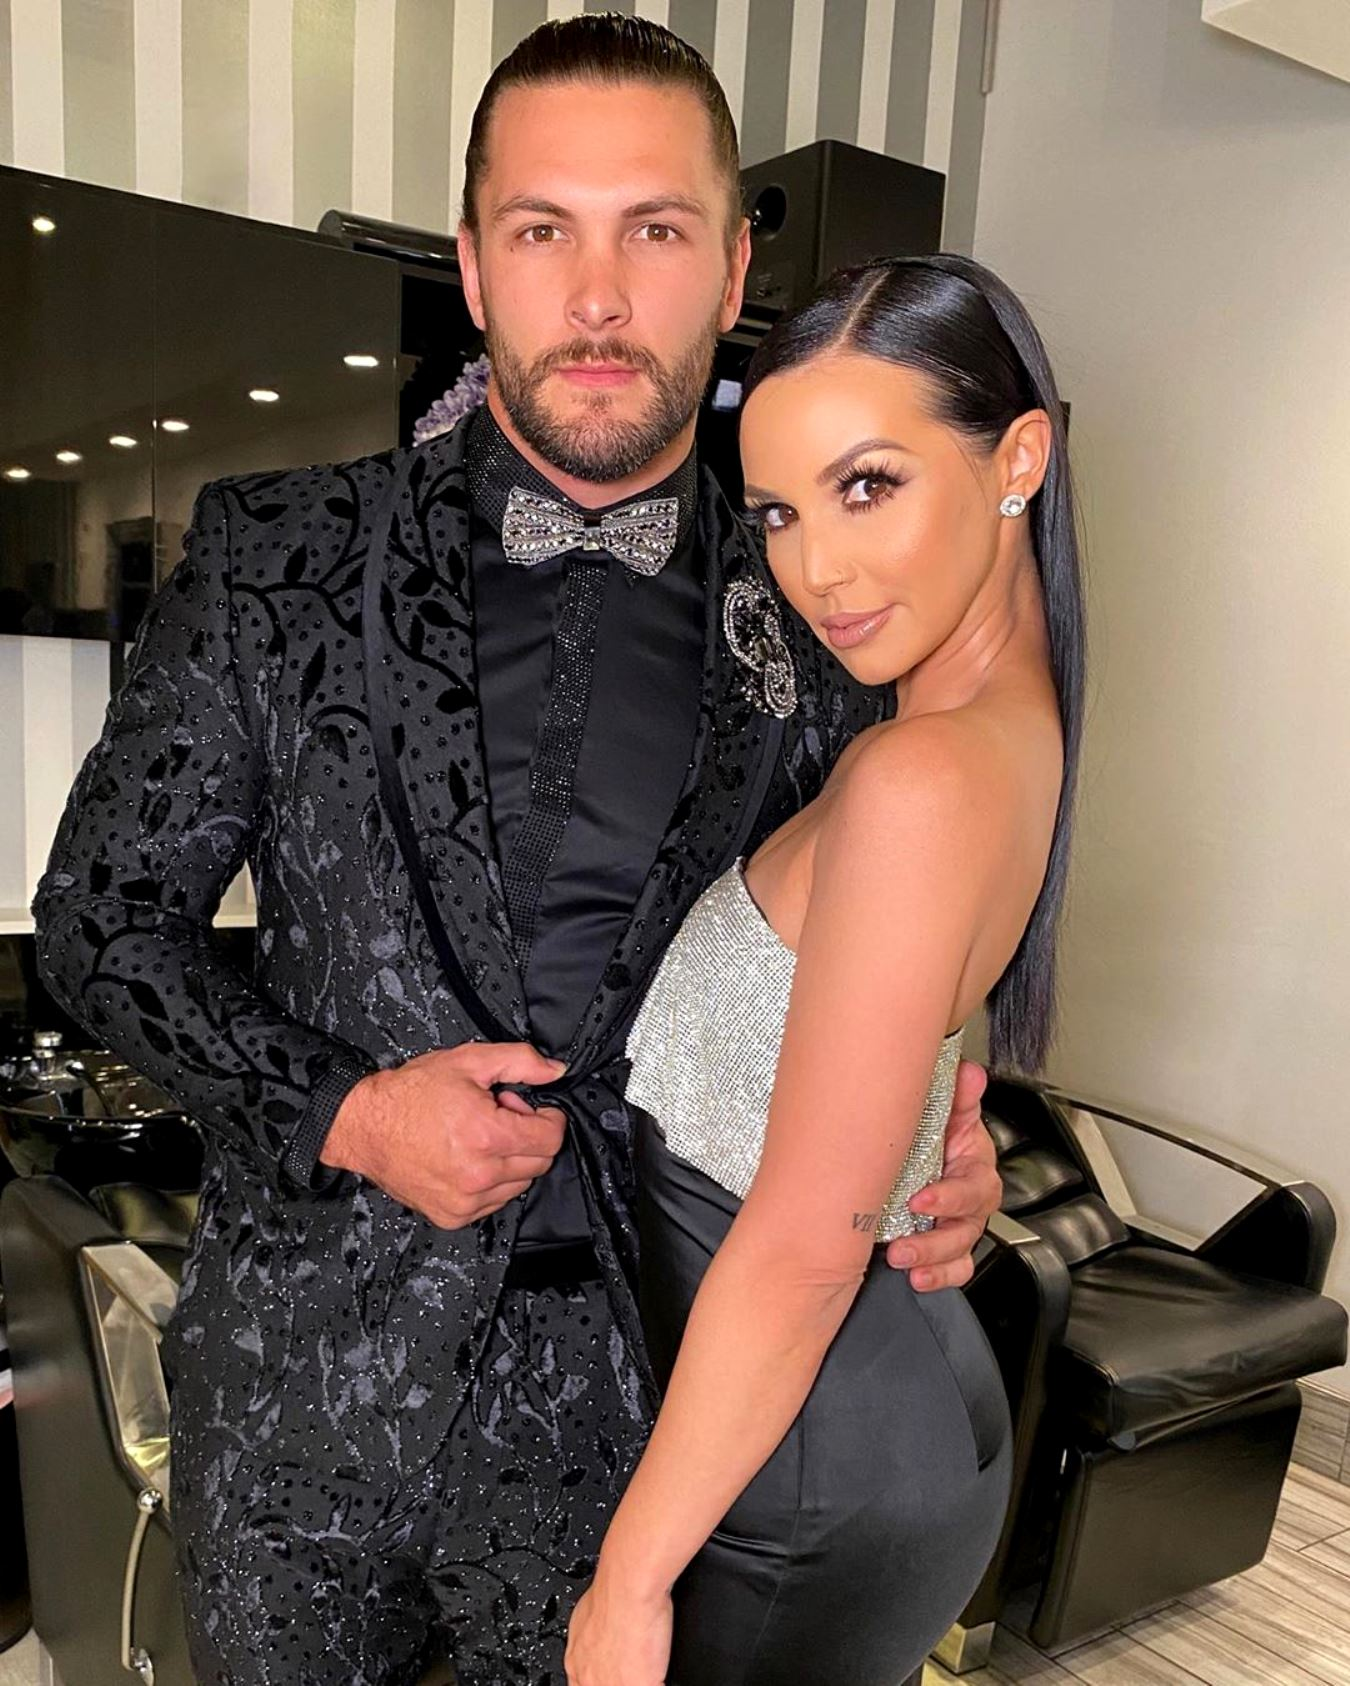 Scheana Shay Defends Boyfriend Brock Davies' Parenting After Fan's Comment Following Their Miscarriage Reveal, Plus He Tells Fans He Has Scheana's Back Amid Heartbreak